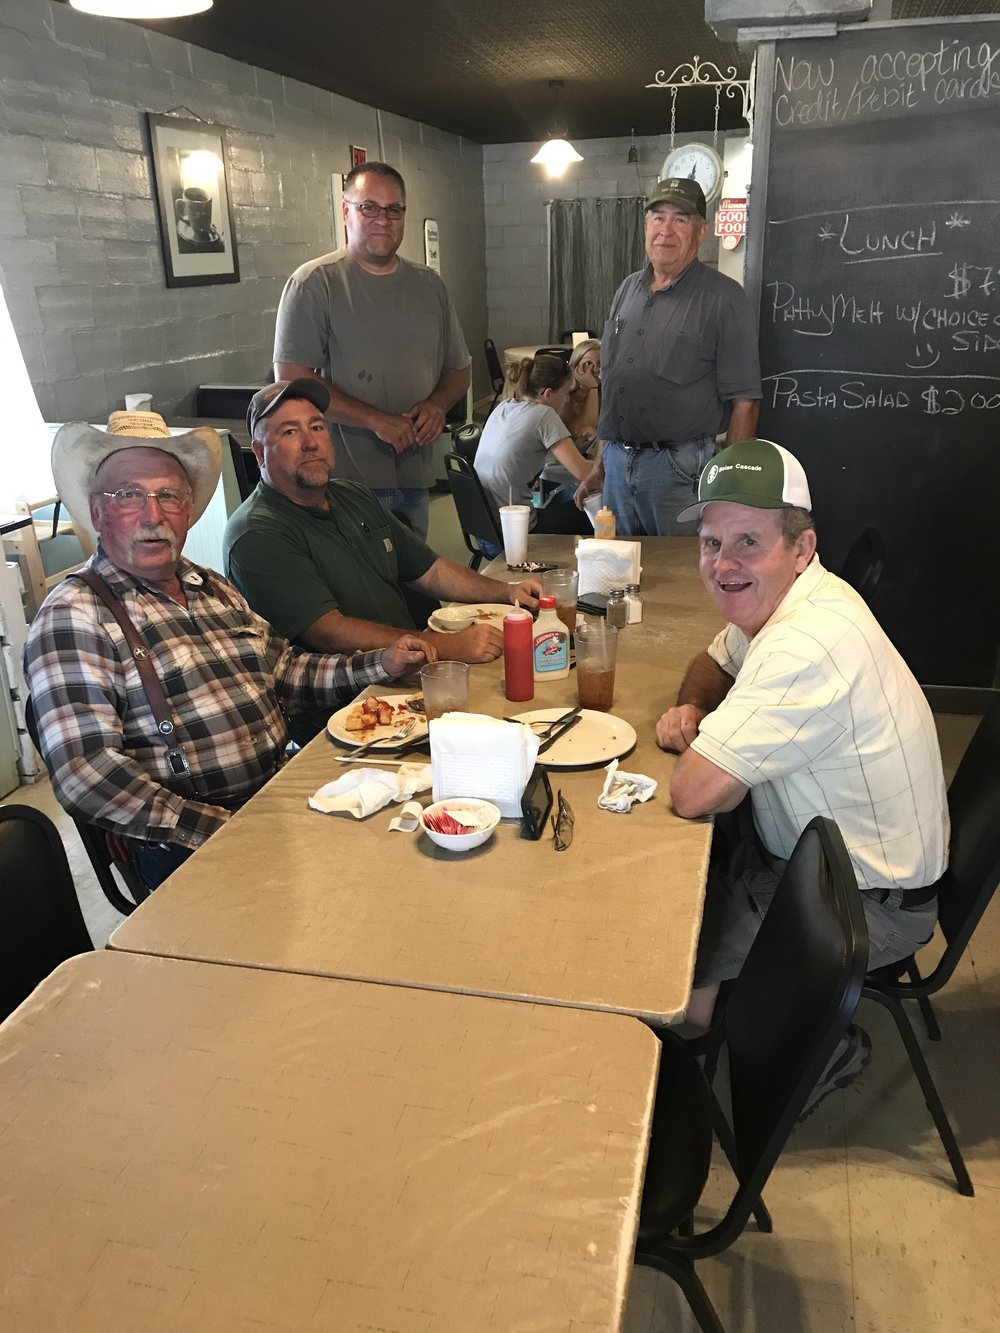 "We really enjoyed talking with this nice group of men who also happened to stop into the Ballard Grill for lunch. We were taken aback when one of them came outside as we were about to leave and handed us a $100 bill ""to use for dinner"" because they ""were inspired by us!"" How humbling to us and generous of him!"